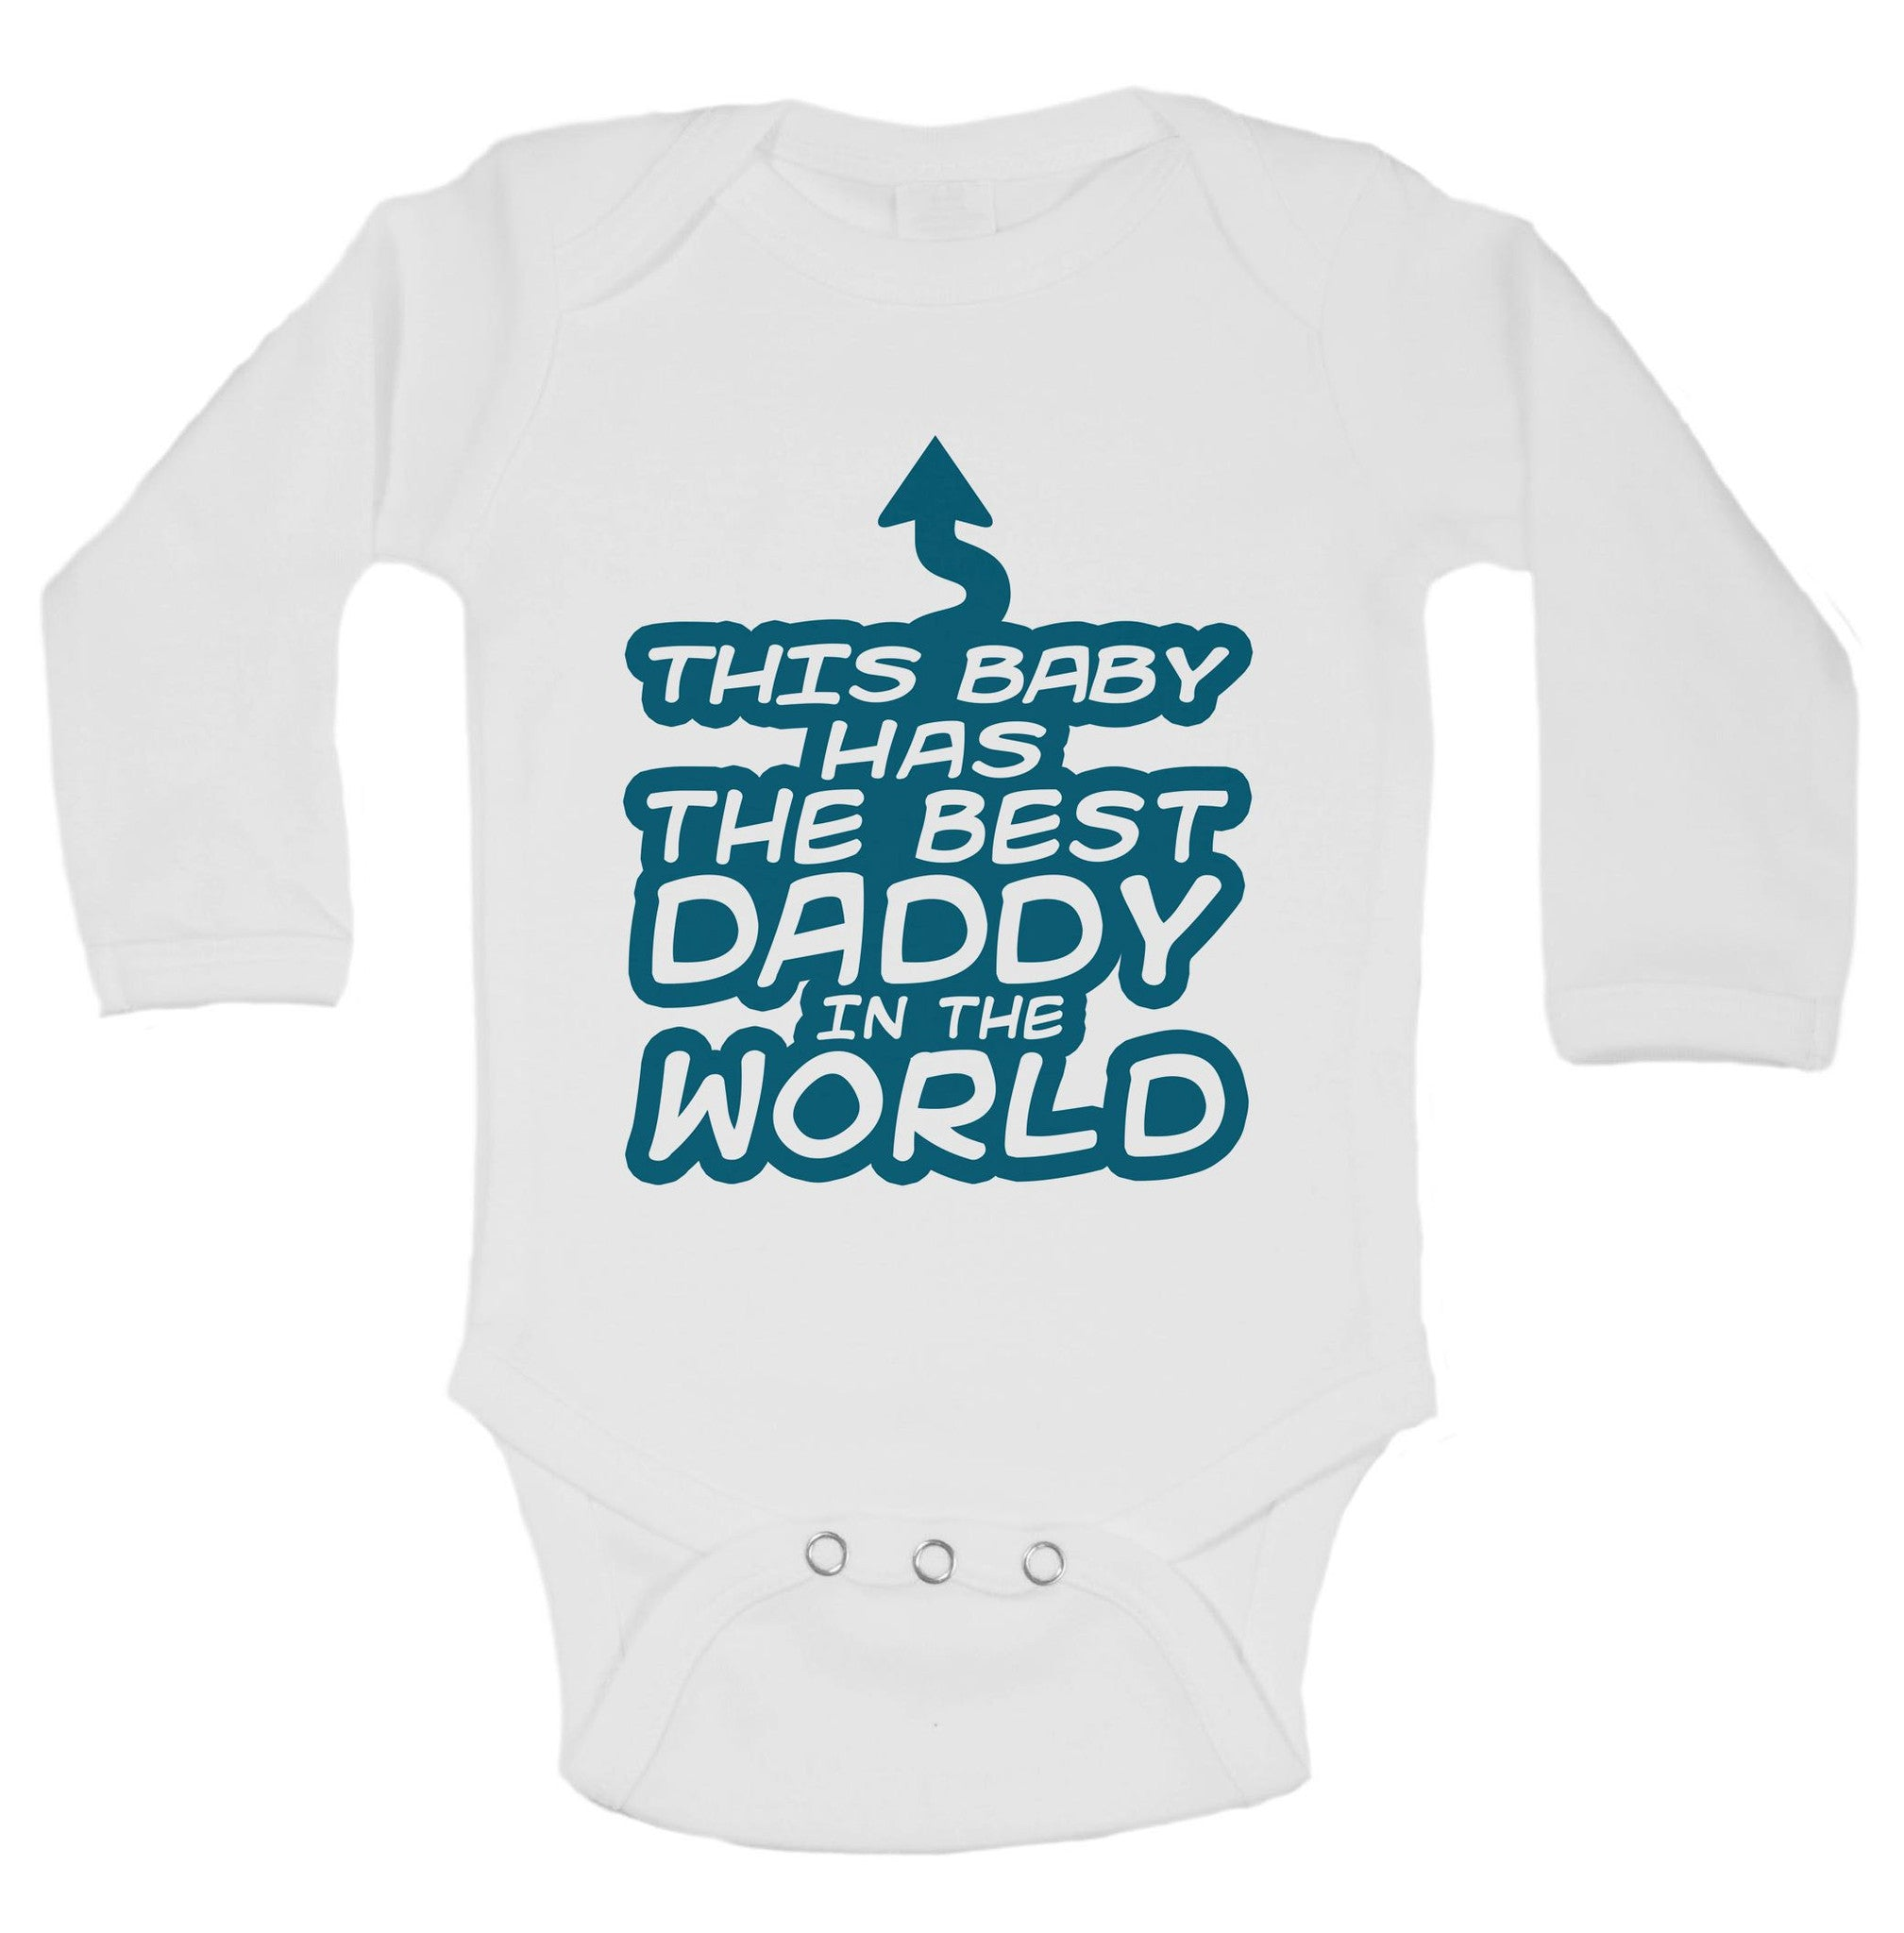 This Baby Has The Best Daddy In The World Funny Kids Onesie - B28 - Funny Shirts Tank Tops Burnouts and Triblends  - 1